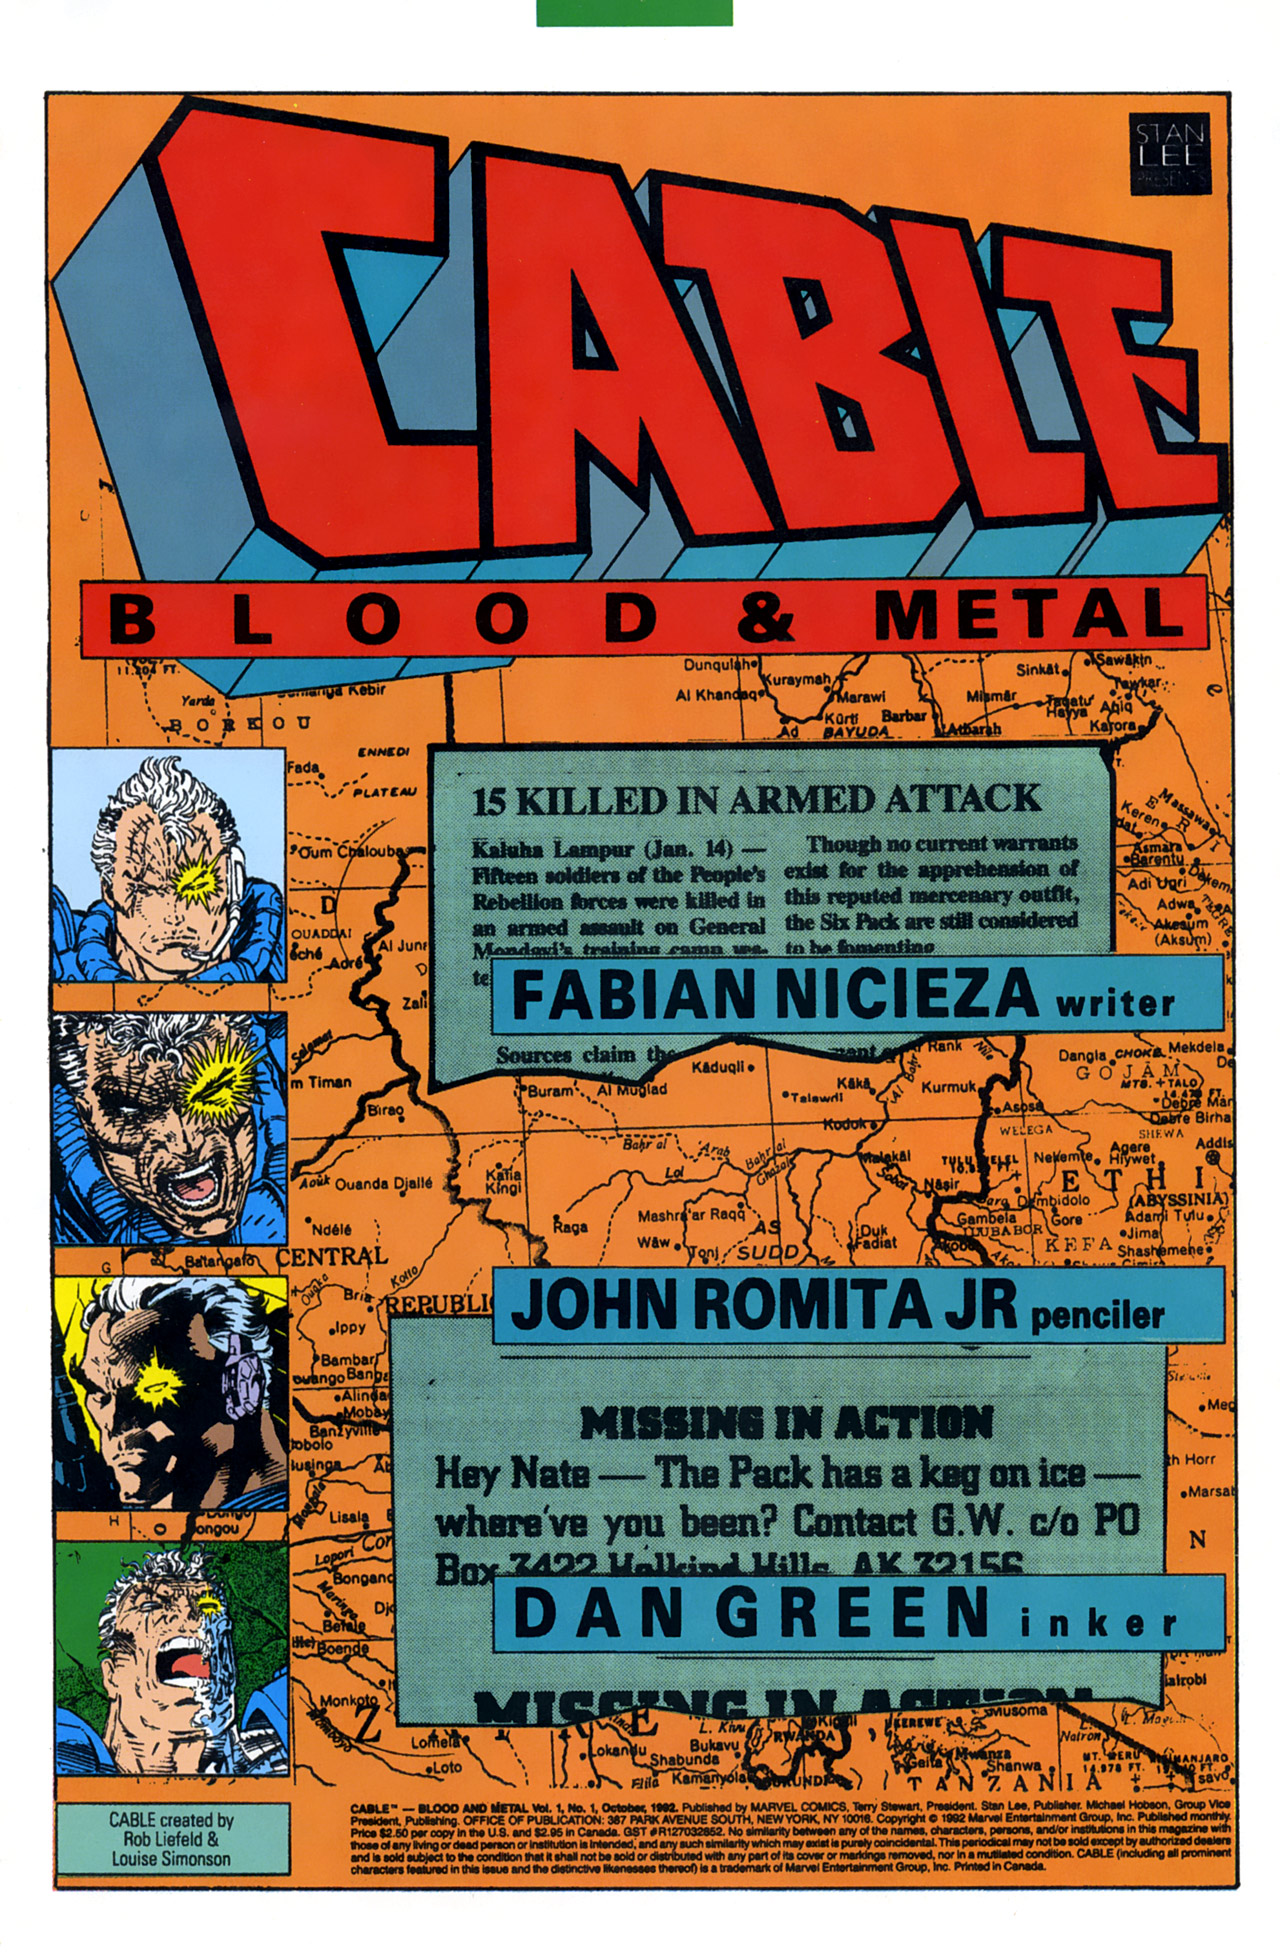 Read online Cable - Blood and Metal comic -  Issue #1 - 3